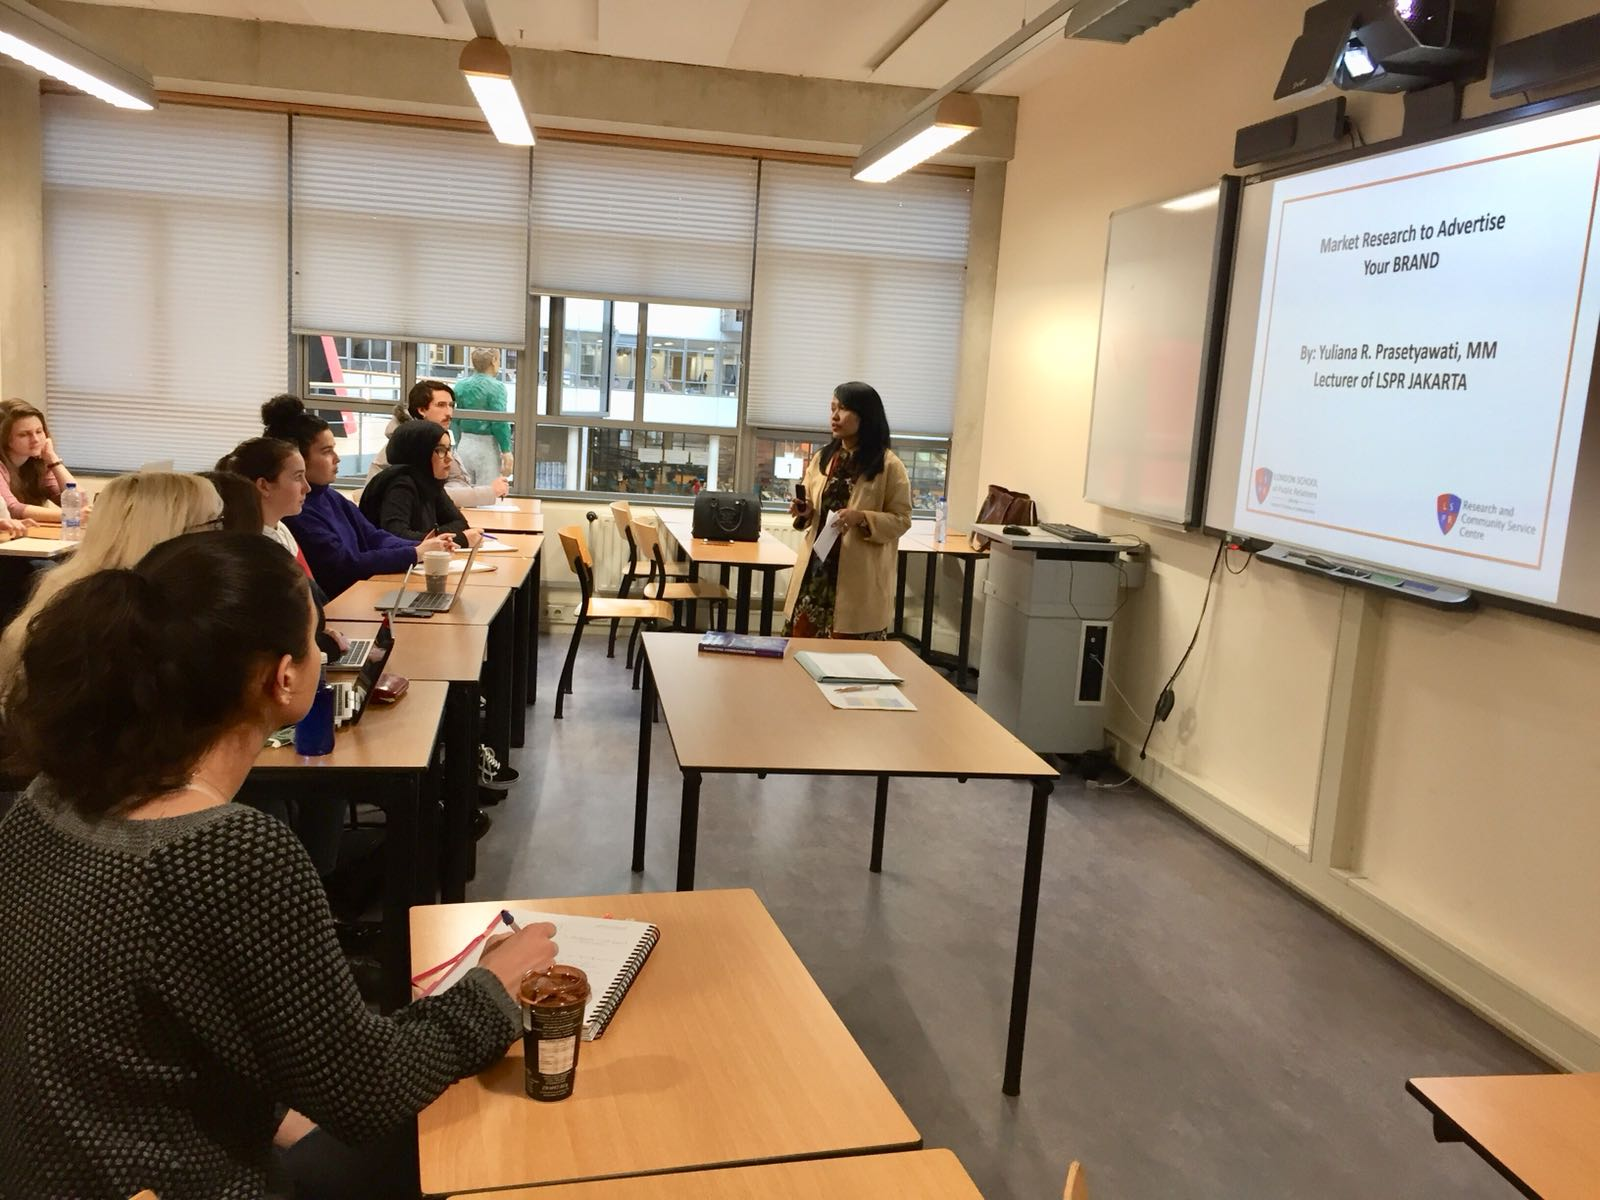 Yuliana_guest lecturer